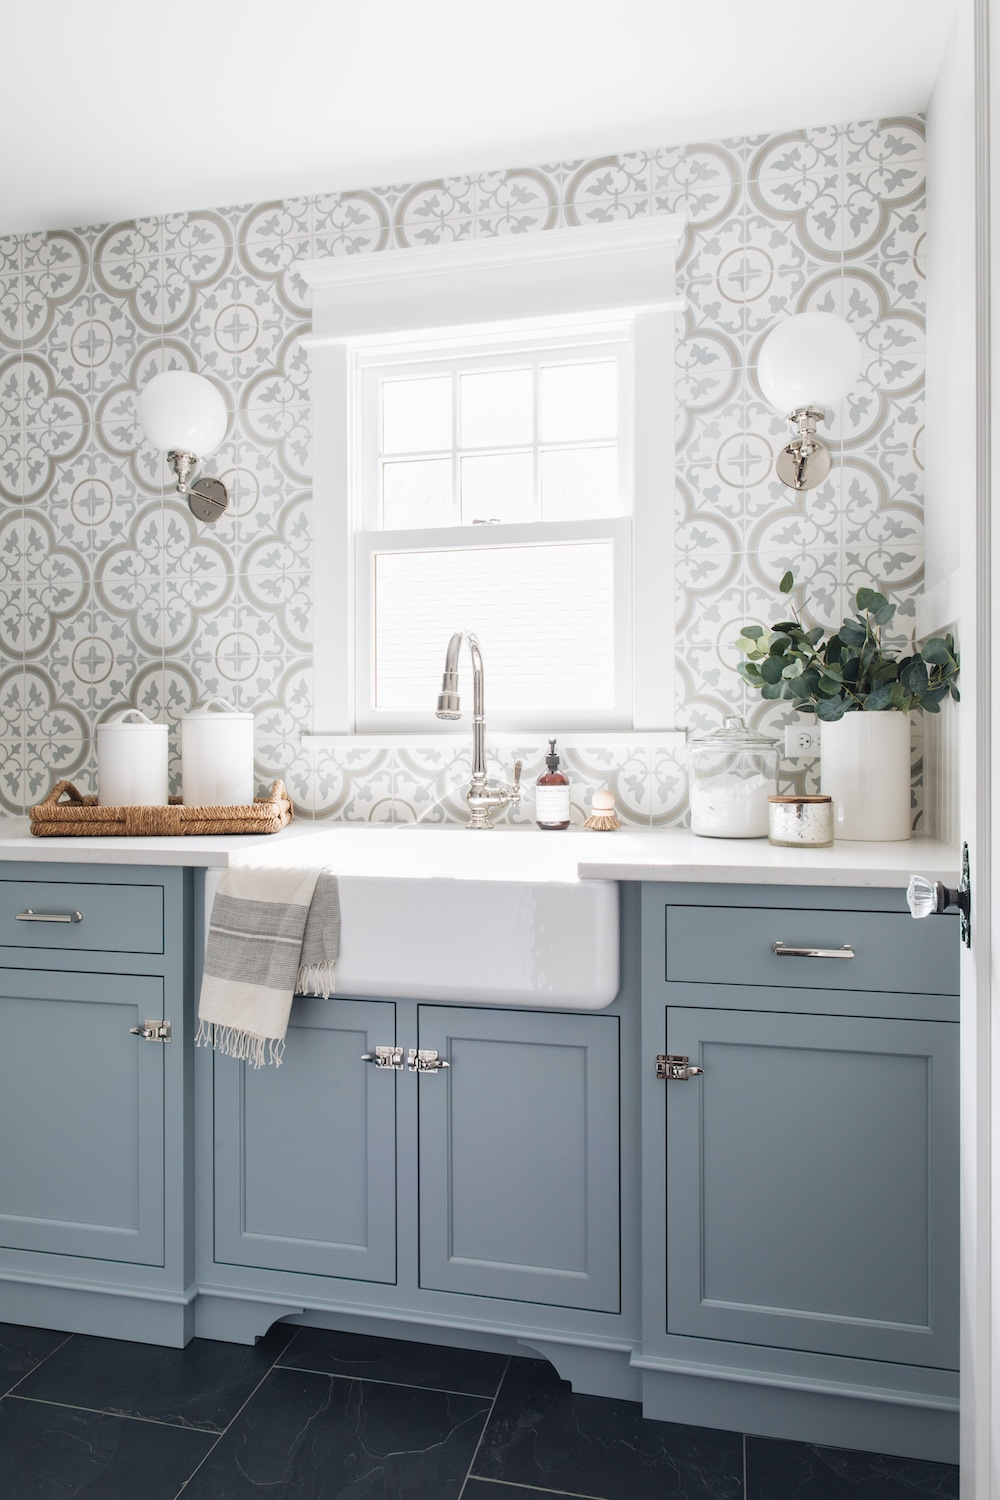 Rejuvenate With the Wallpaper Effect, Presented by The Tile Shop